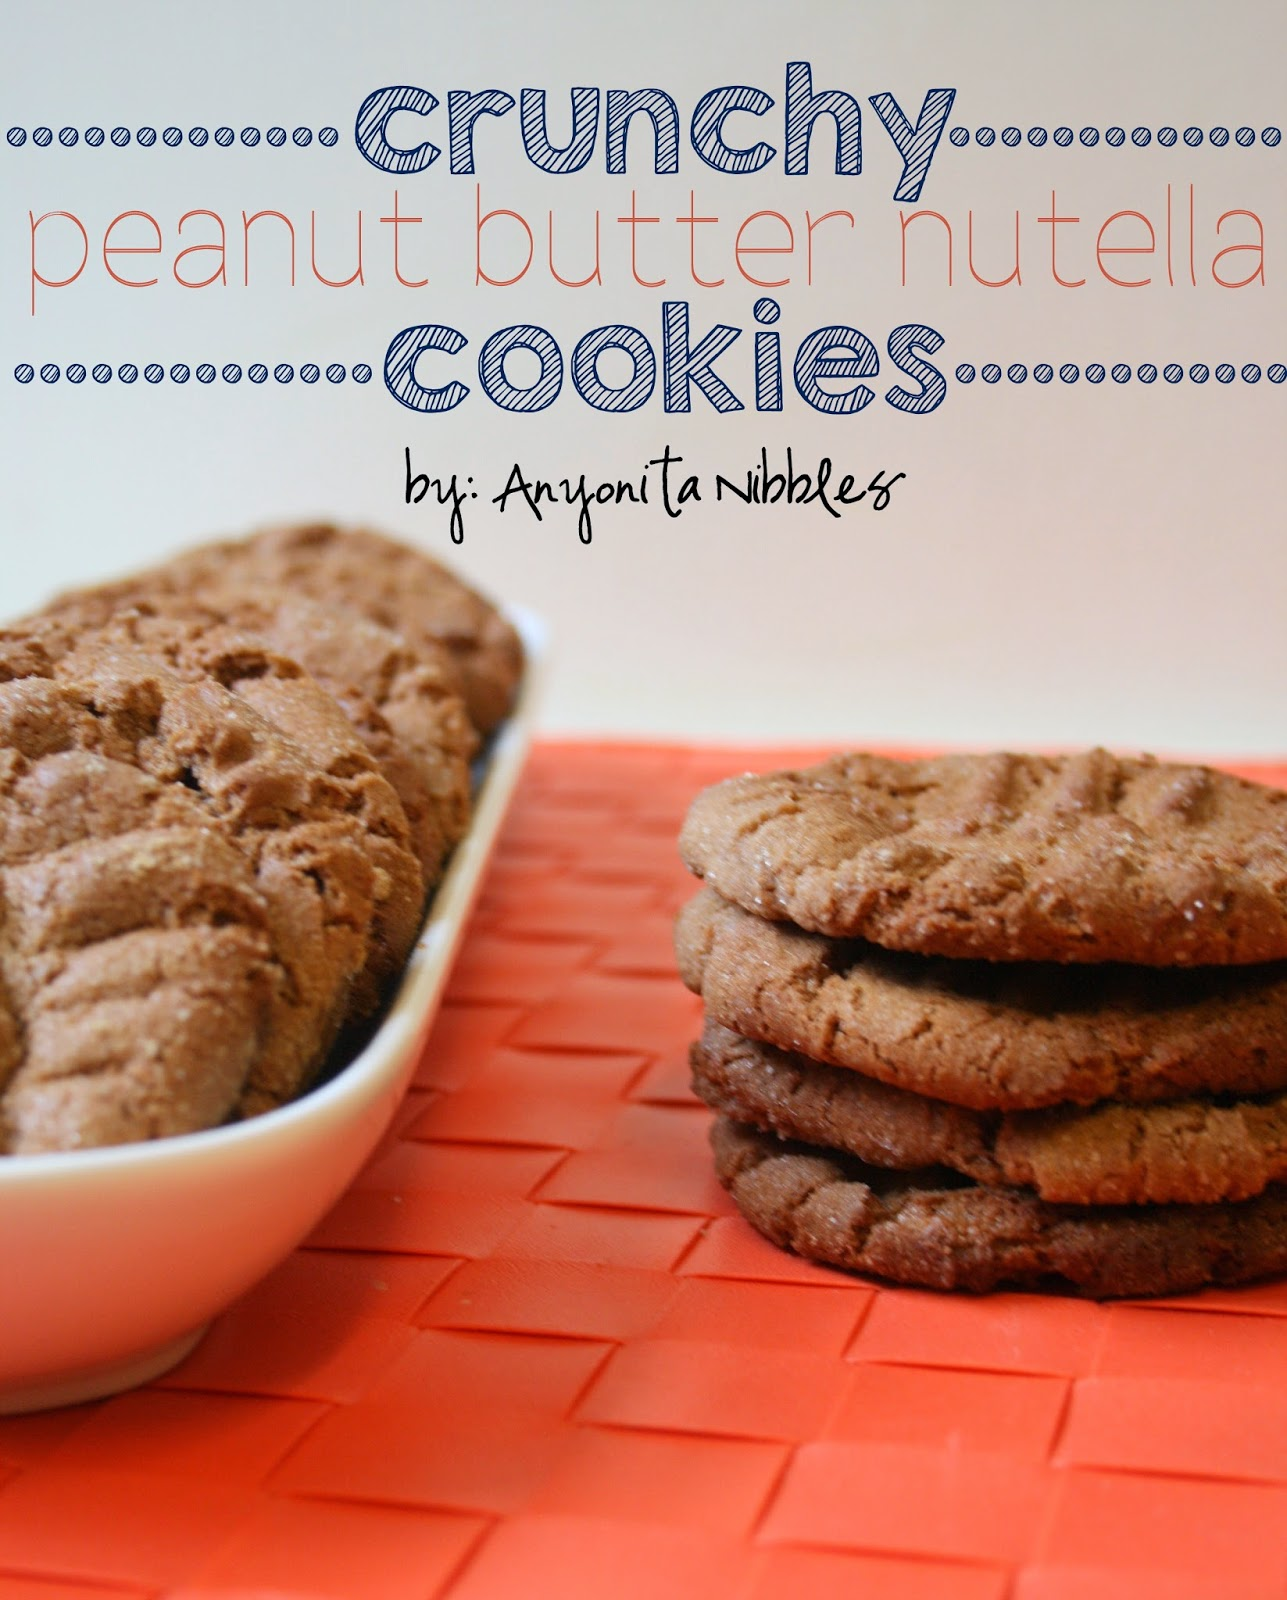 Crunchy Peanut Butter Nutella Cookies | Anyonita Nibbles